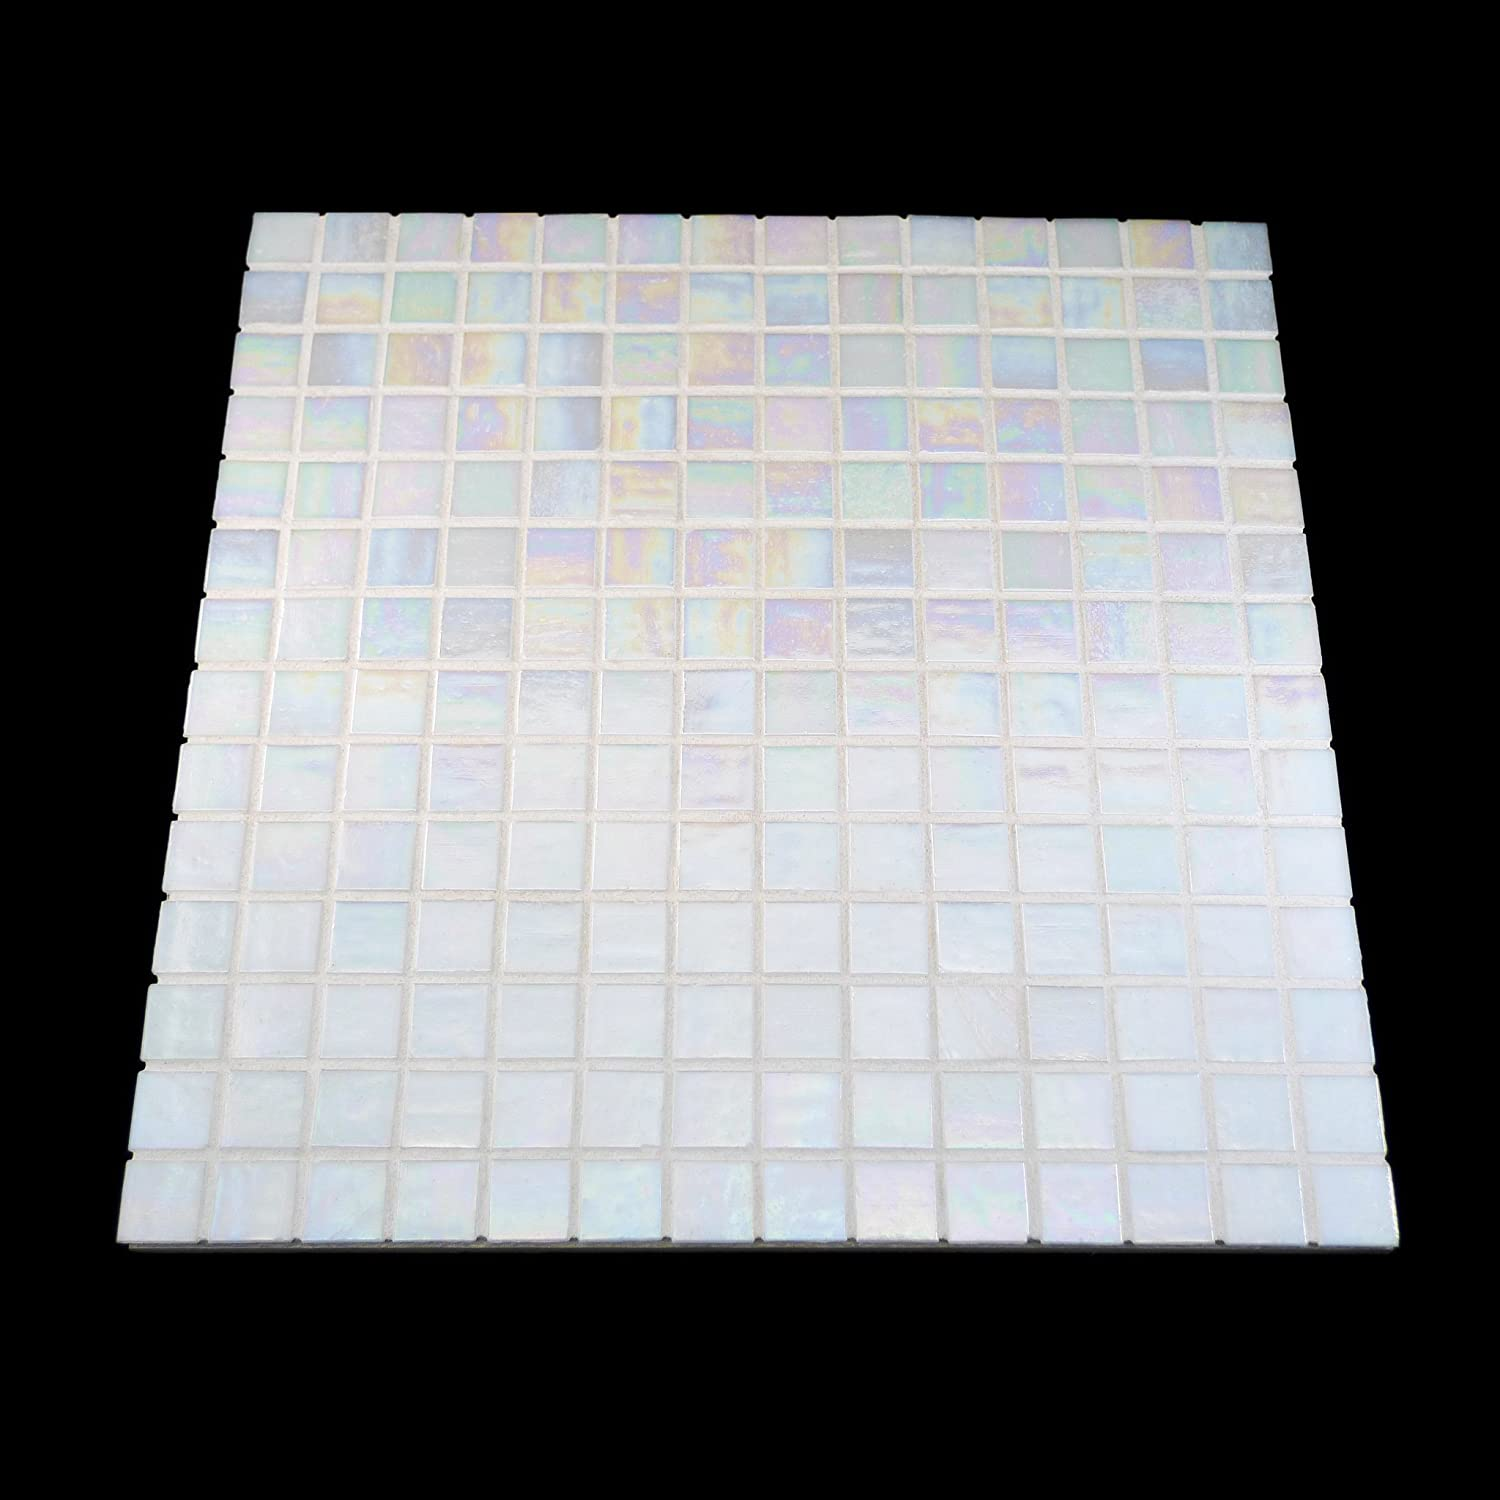 URBN Contemporary Seafoam Green Iridescent Glass Mosaic Tile for Kitchen and Bath URBN.tiles Sample Tile 4-1//3 inches x 4-1//3 inches, 0.13 SQ FT